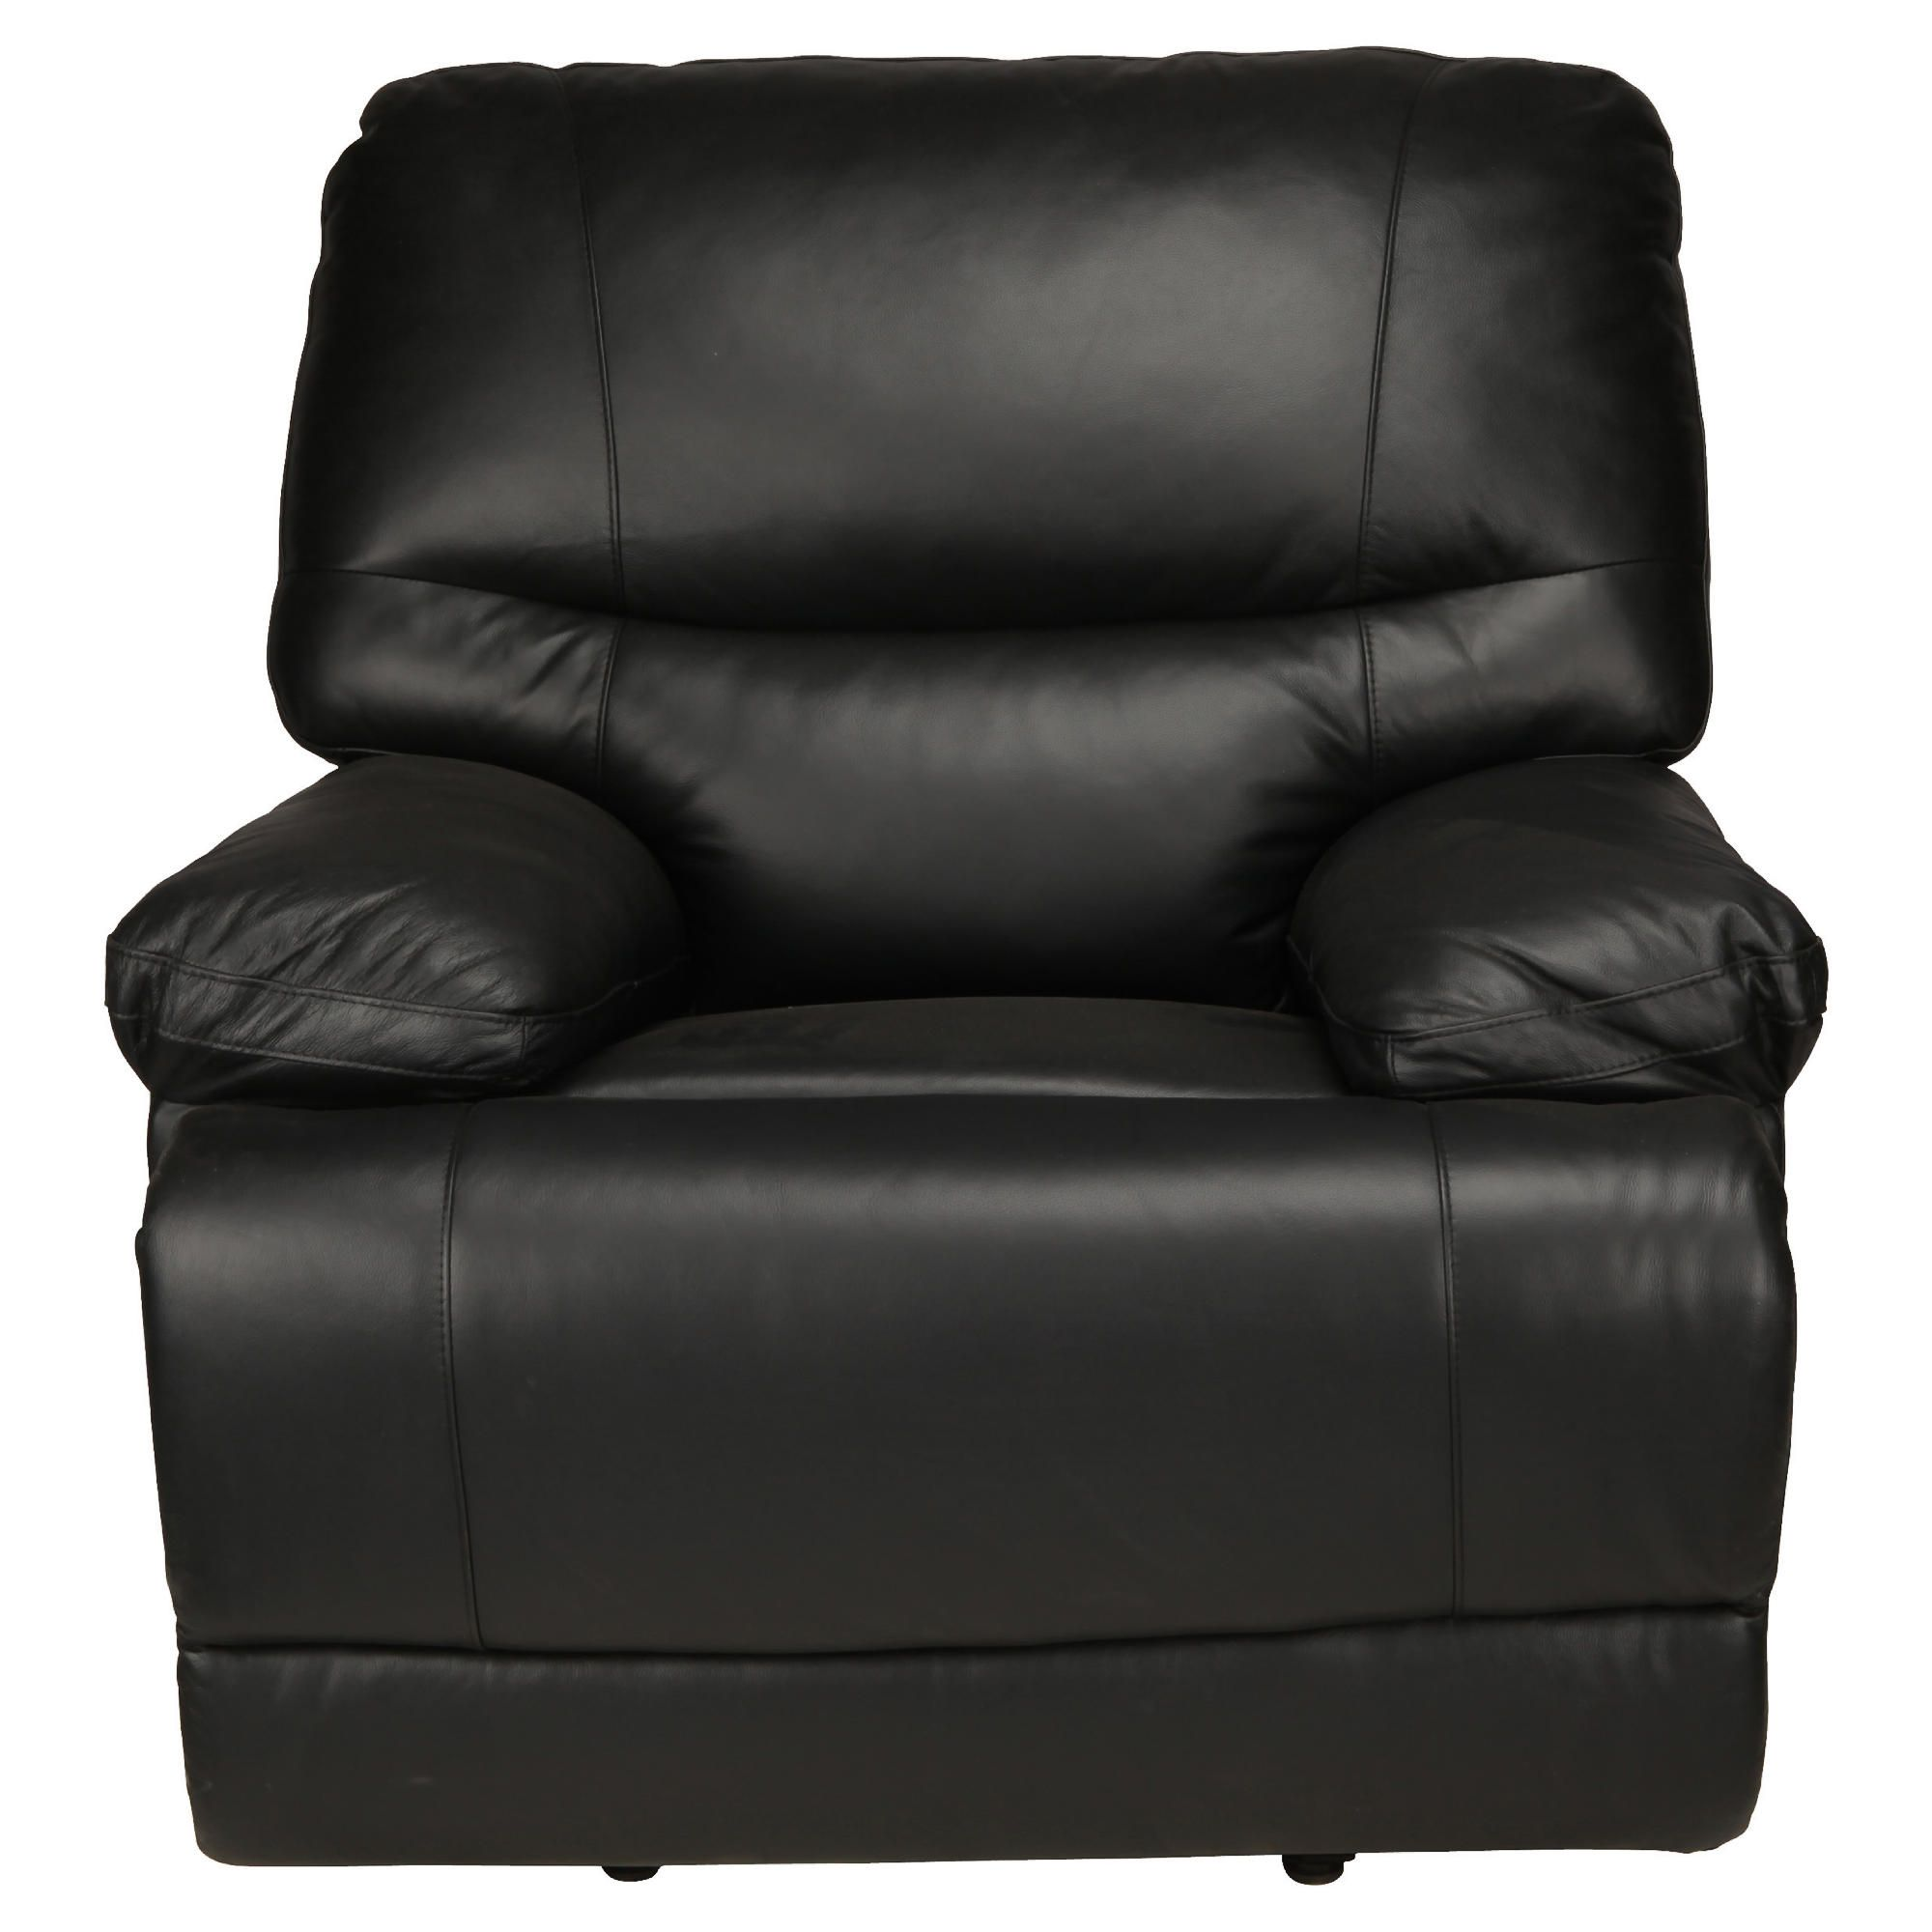 Angelo Leather Recliner Chair, Black at Tescos Direct